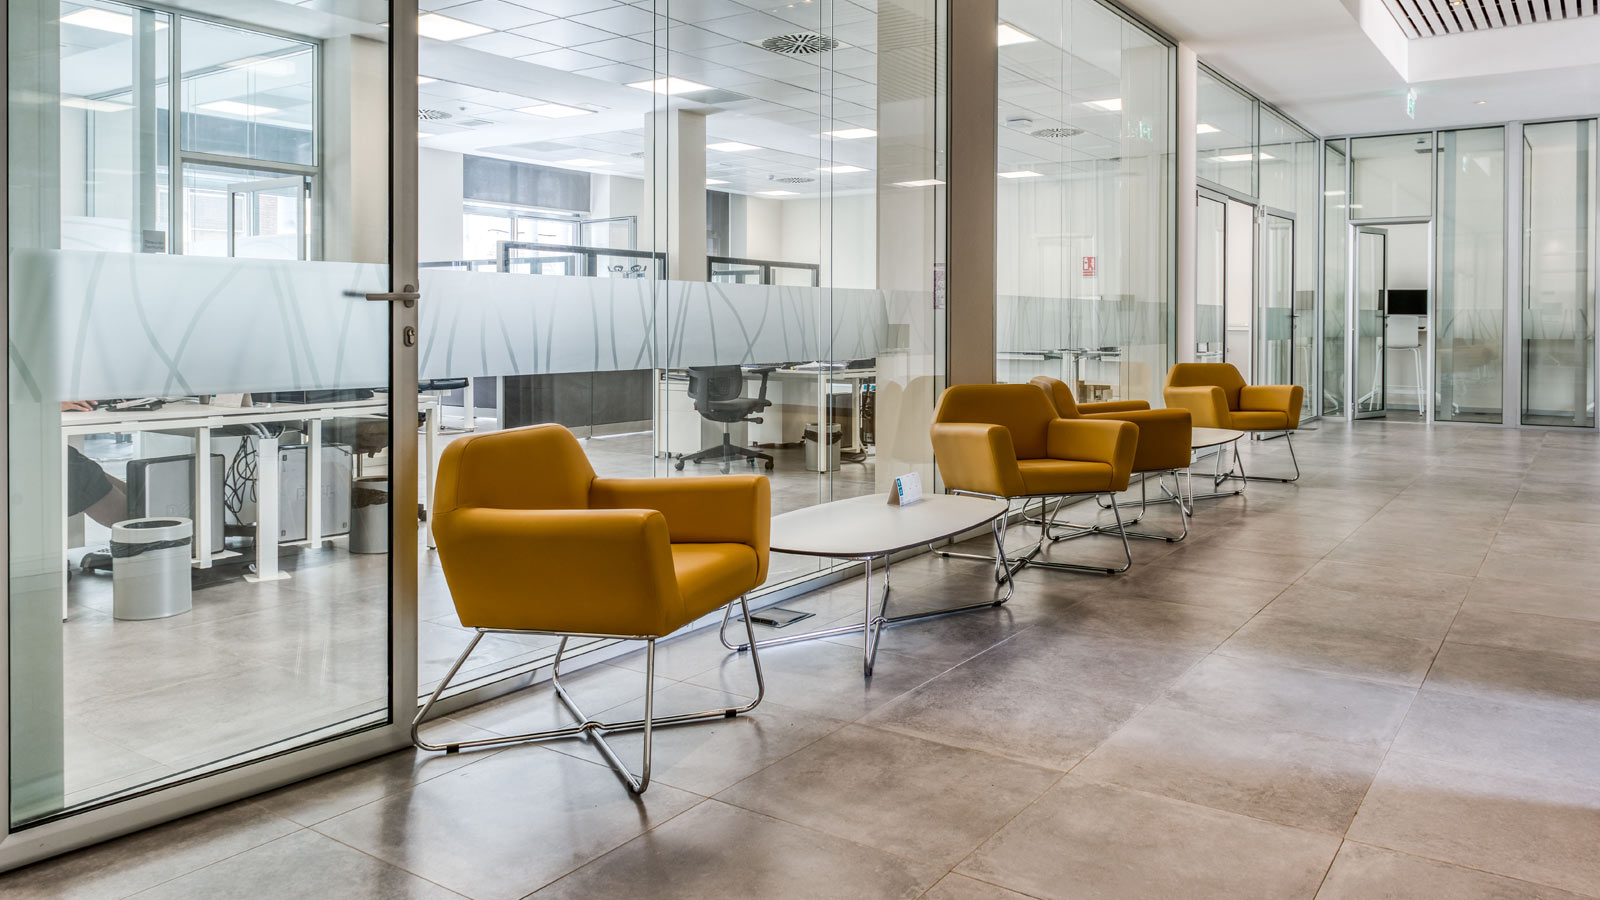 PORCELANOSA Group Projects: Technical flooring from Butech elevates the new Cajamar headquarters in Las Palmas de Gran Canaria